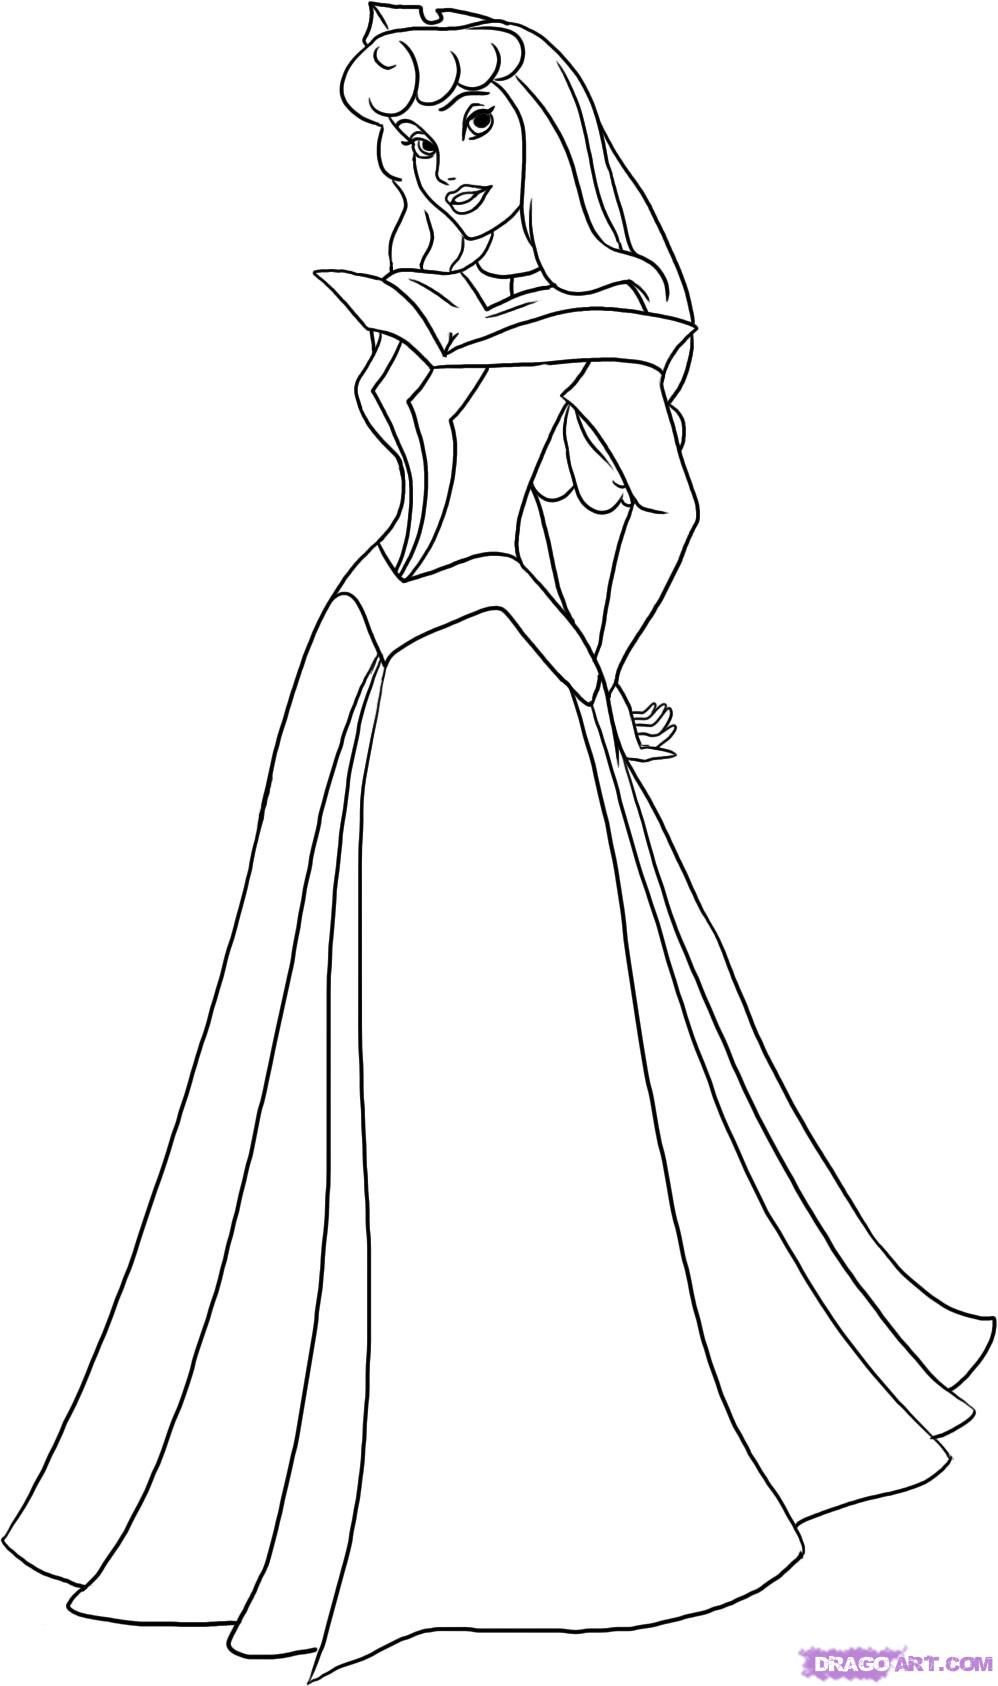 how to draw sleeping beauty princess aurora step 5 tekenen